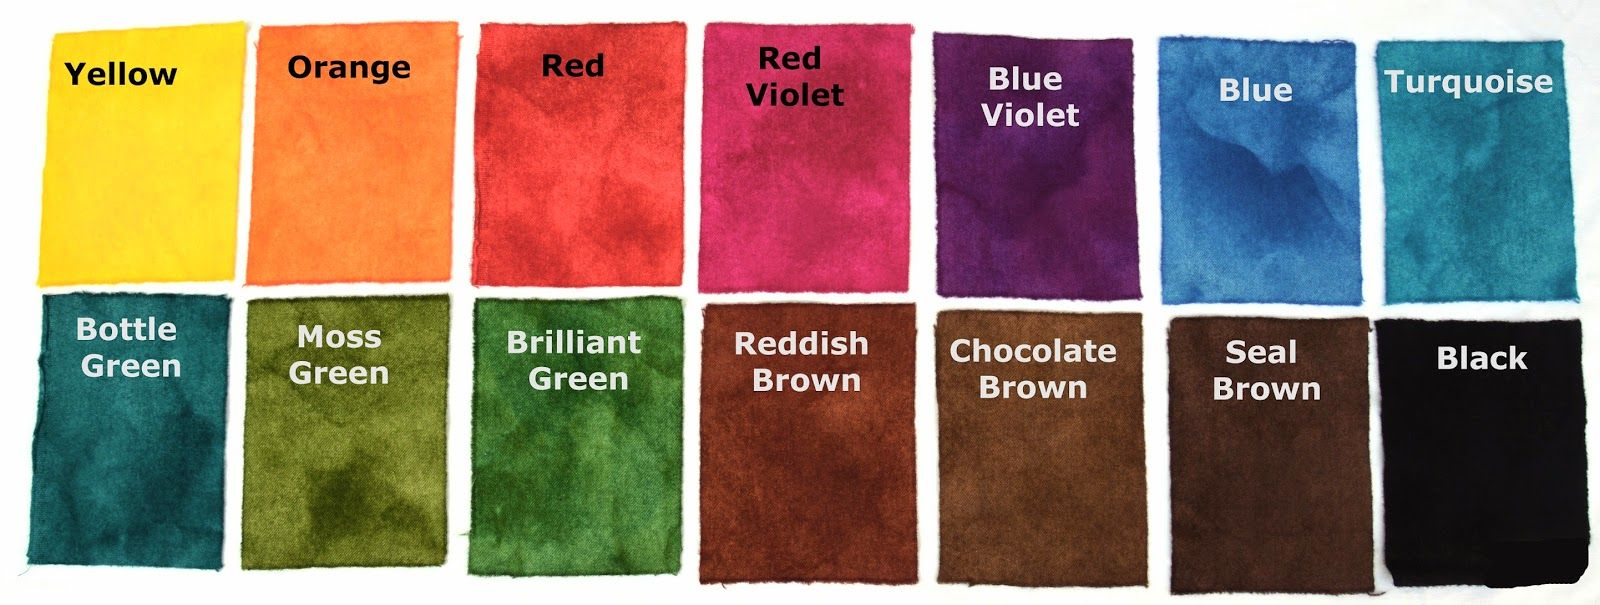 WandaWorks: Colour Chart for Majic Carpet Dyes | Hooked rugs ...